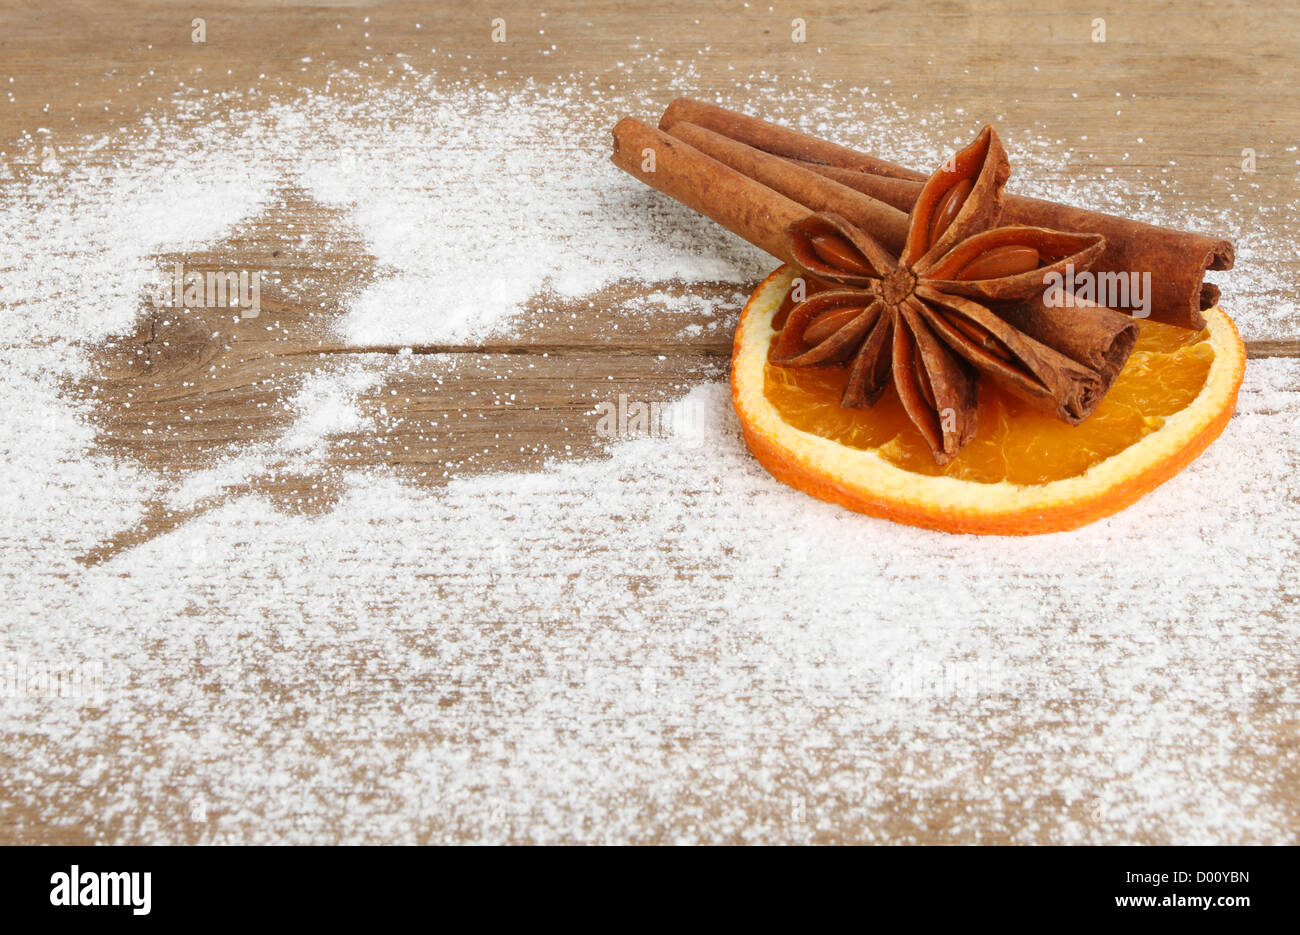 Christmas theme, dried orange, cinnamon and star anise on a wooden board with a shadow of holly in dusted icing - Stock Image